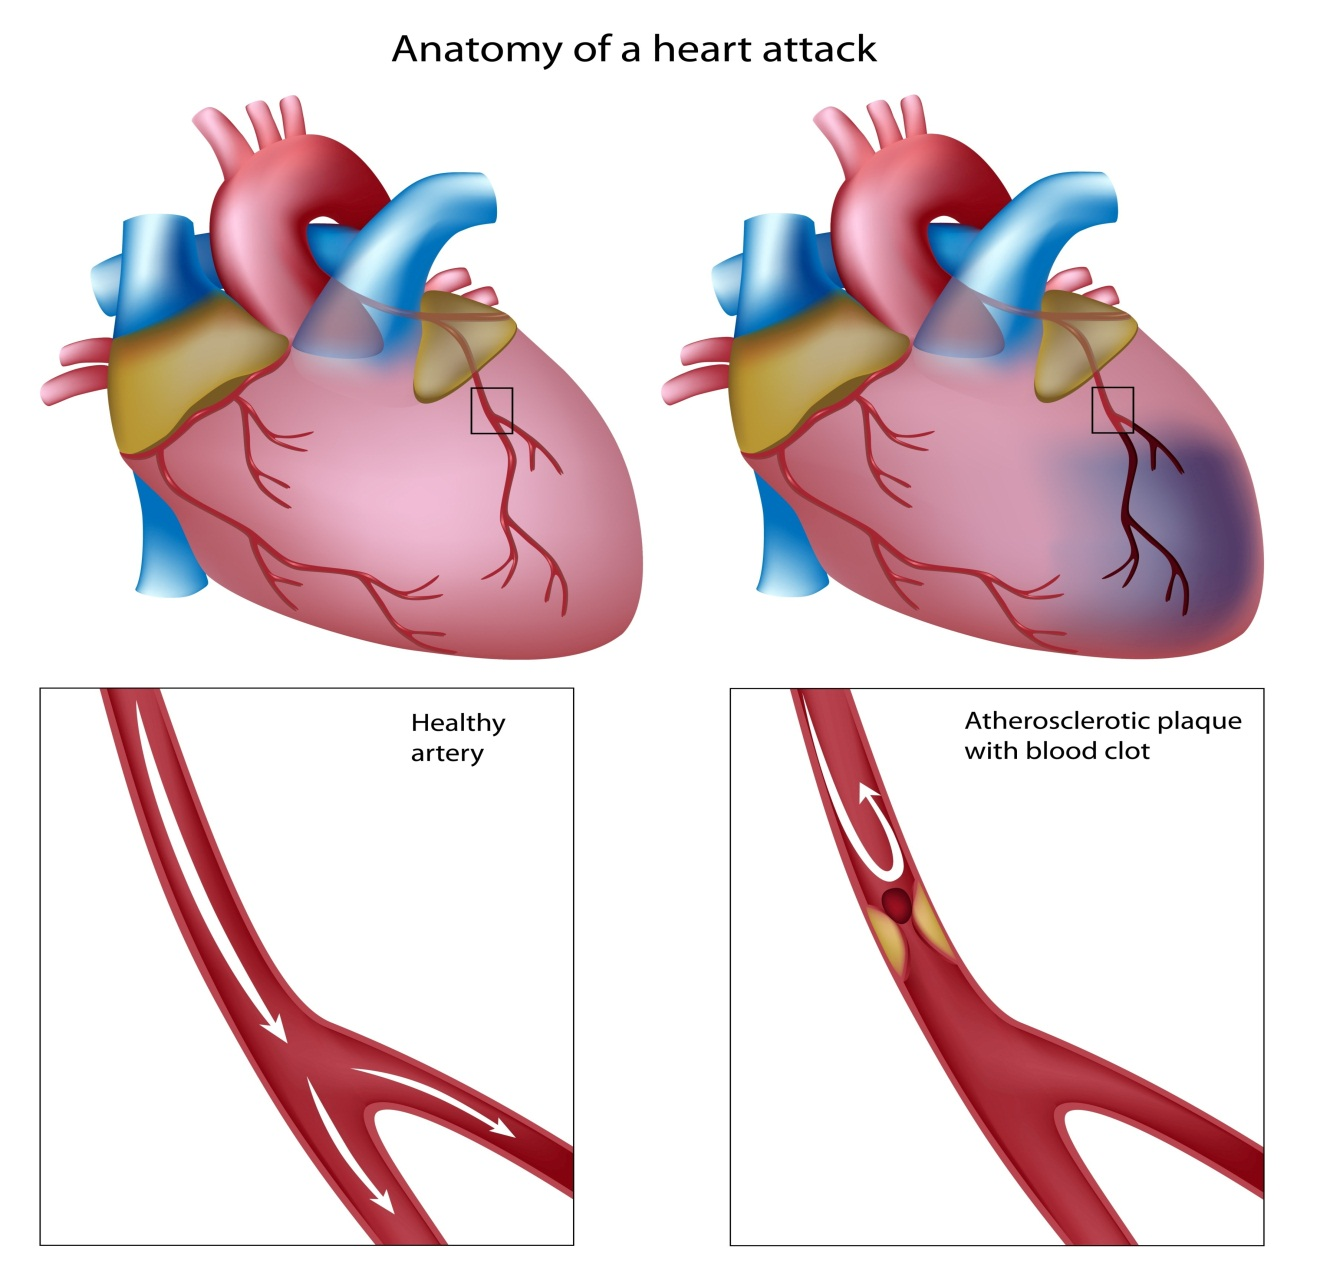 MYOCARDIAL INFARCTION-Heart attack, technically known as myocardial infarction